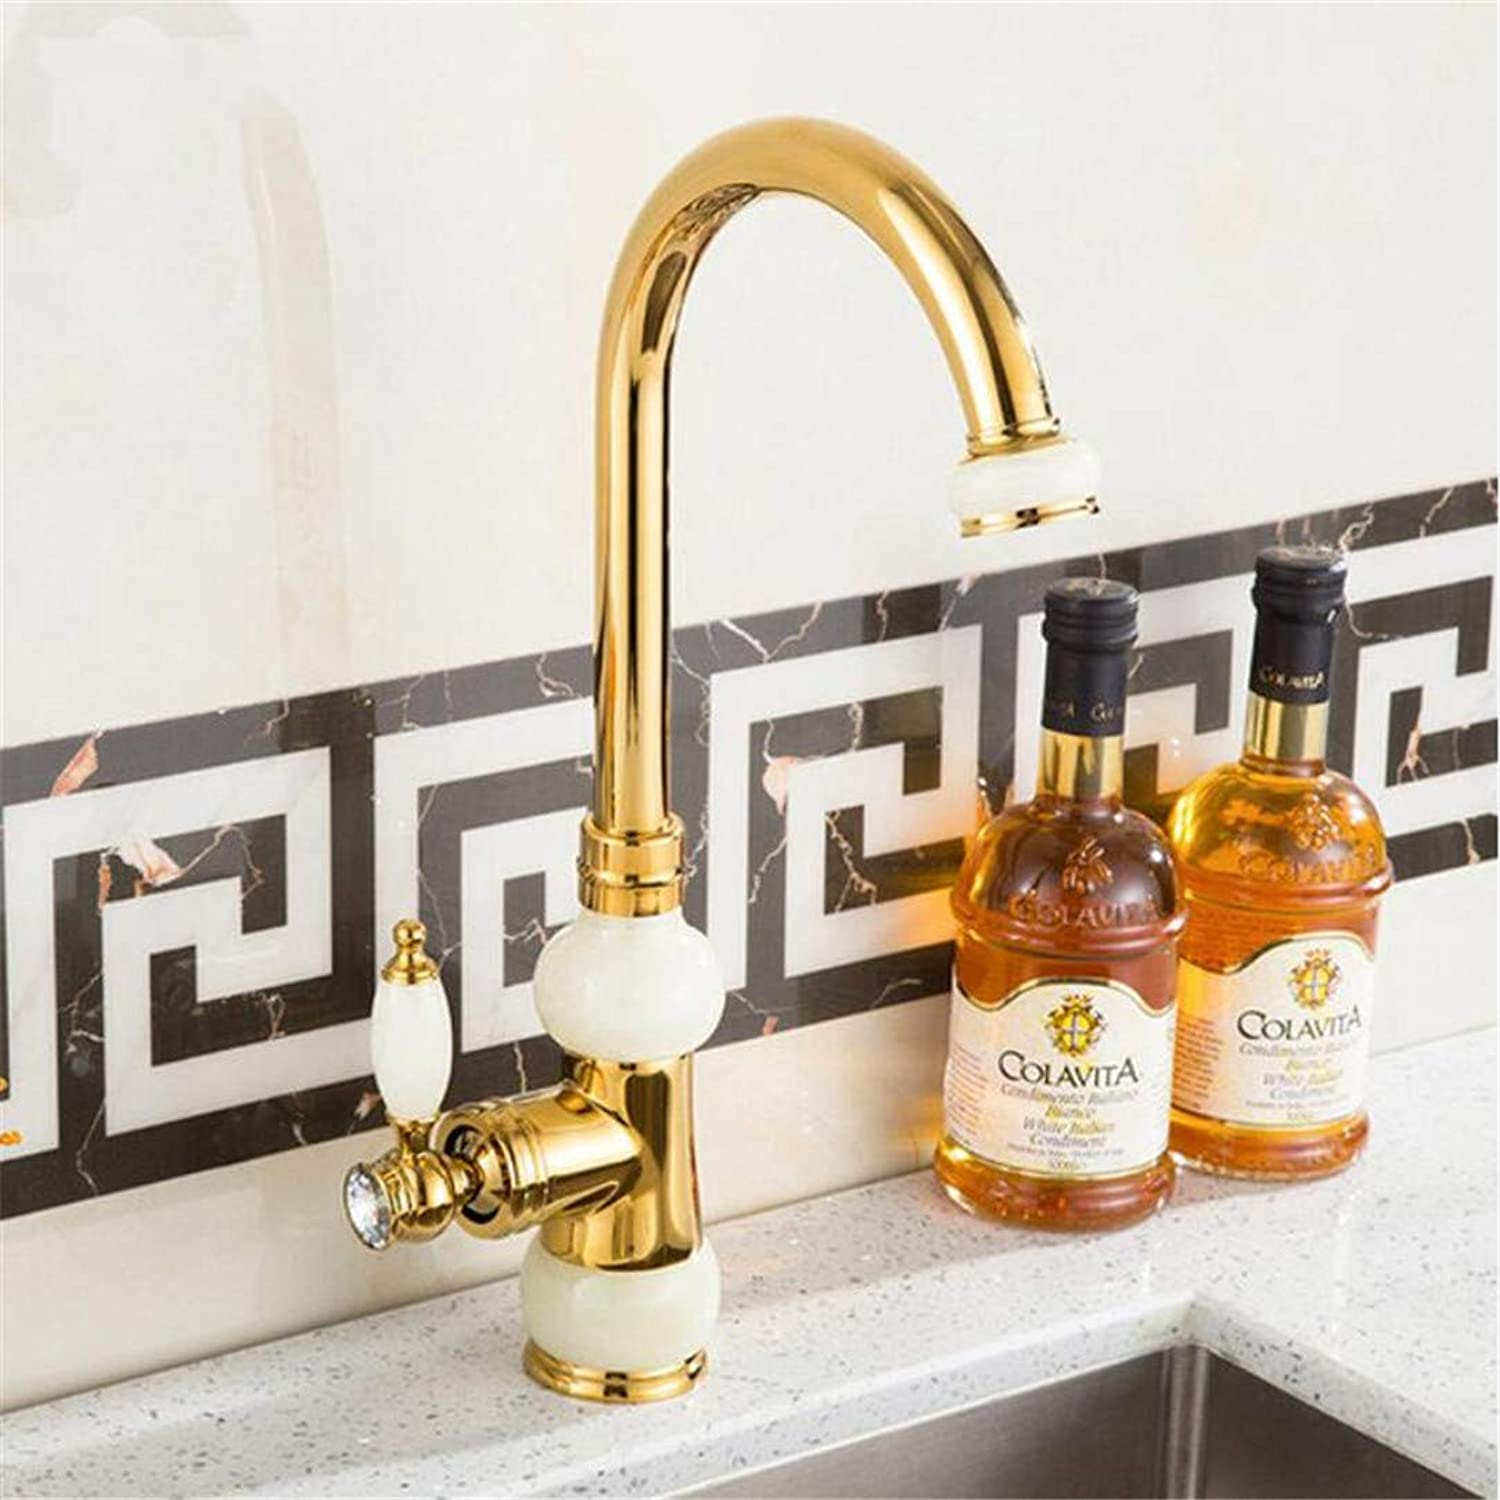 360 Degree Swivel Basin Faucets Euro gold Washbasin Faucet Luxury Tall Taps Single Handle Vanity Single Hole Mixer Water Taps